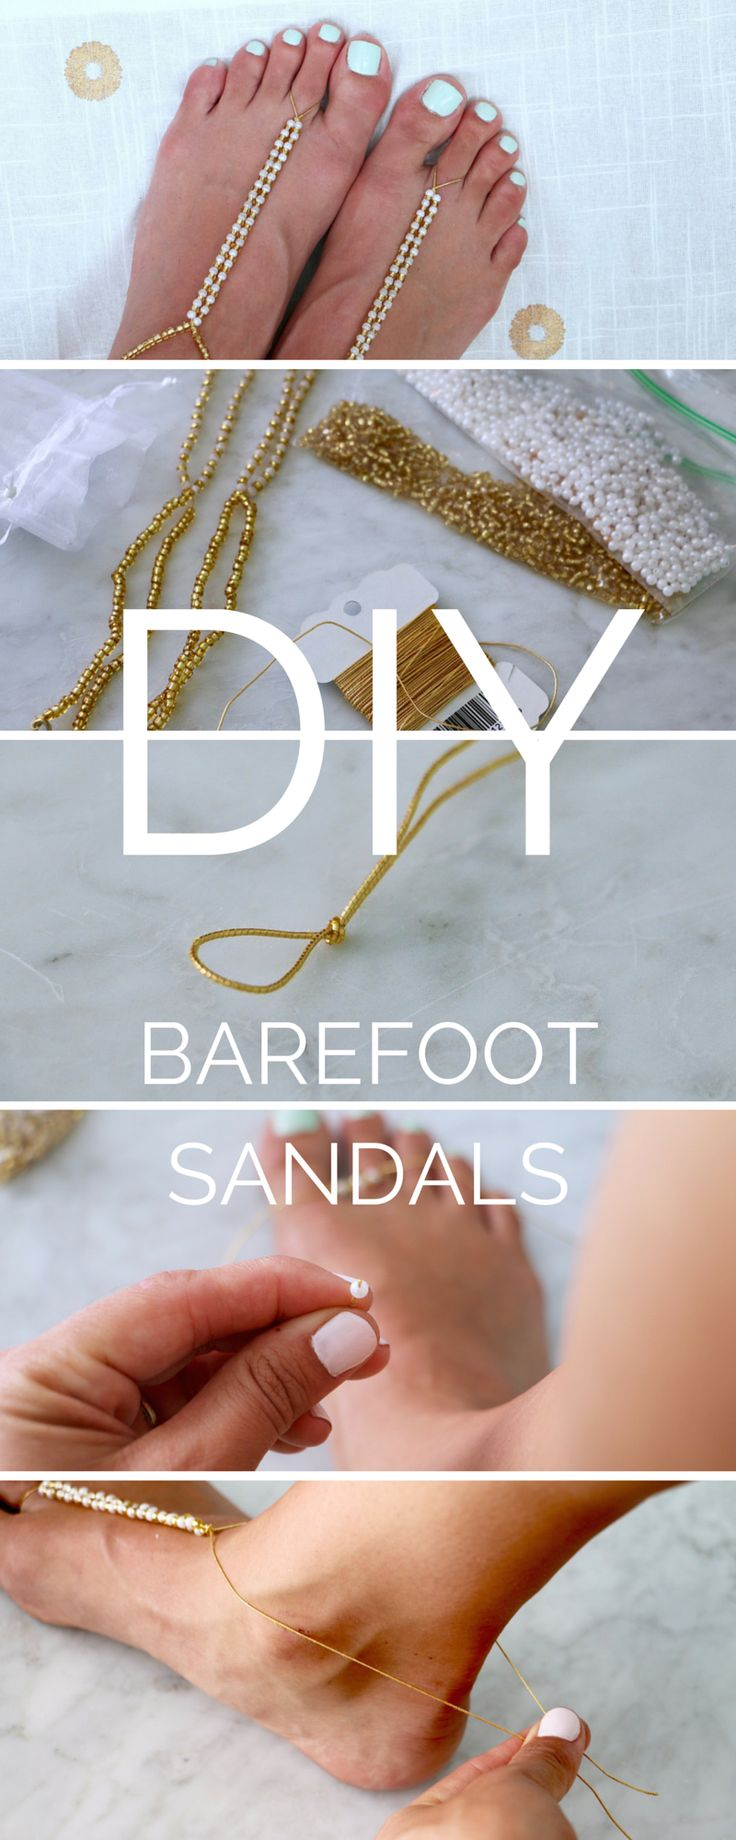 DIY Barefoot Sandals for a Beach Wedding - a quick, easy tutorial. Makes a great gift for a bride or her bridesmaids!